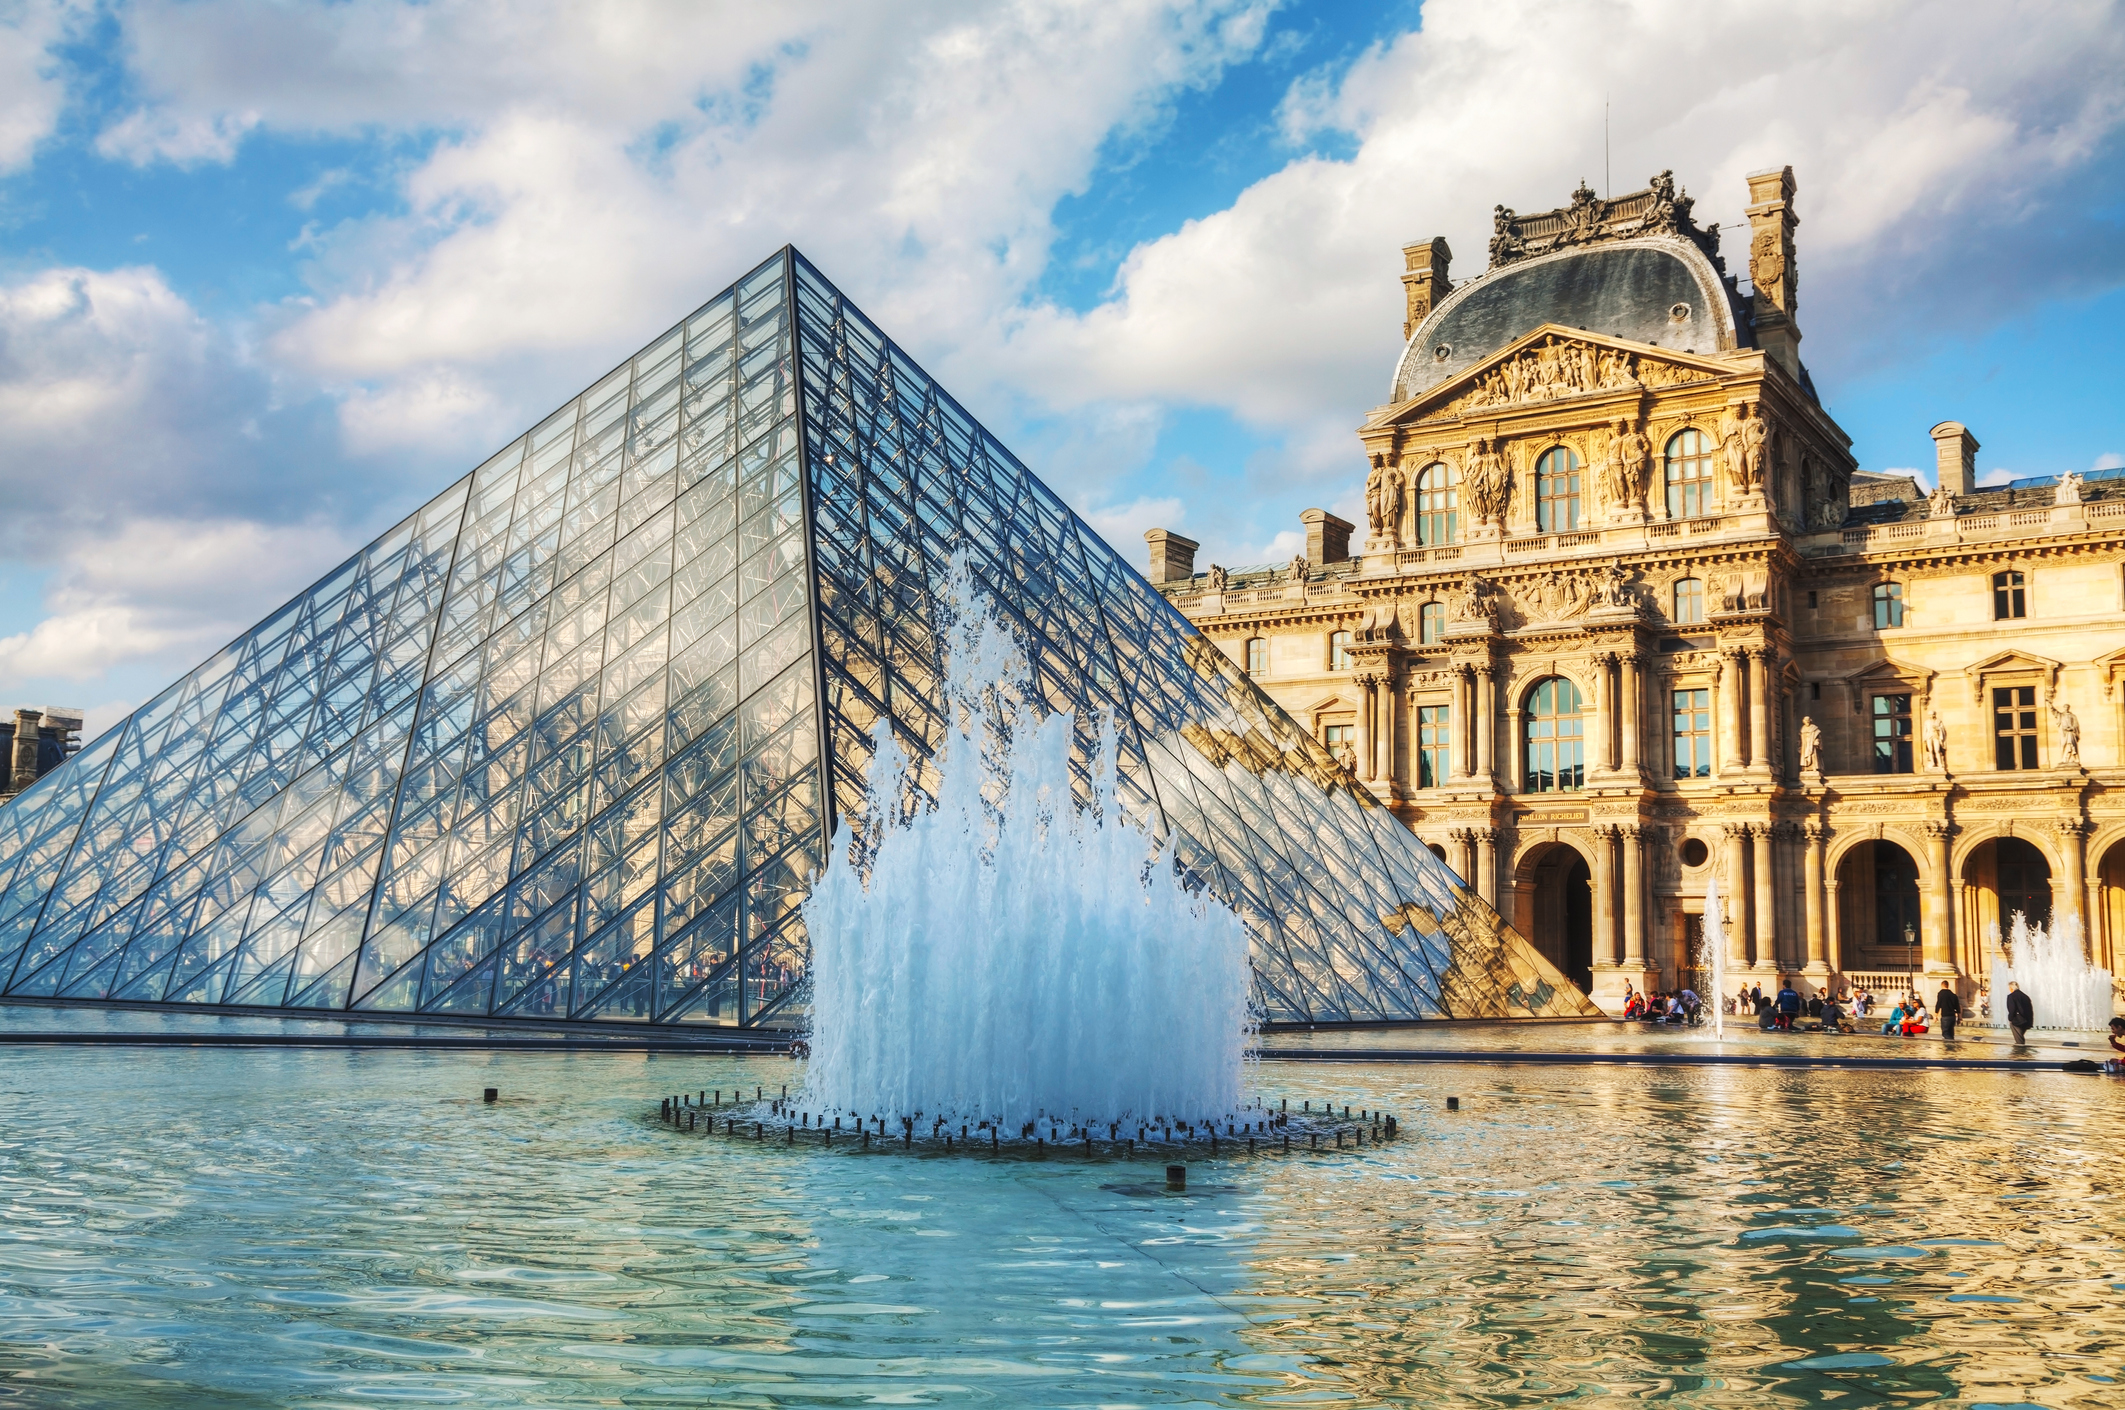 The Louvre Pyramid in Paris, France. It serves as the main entrance to the Louvre Museum. Completed in 1989 it has become a landmark of Paris.